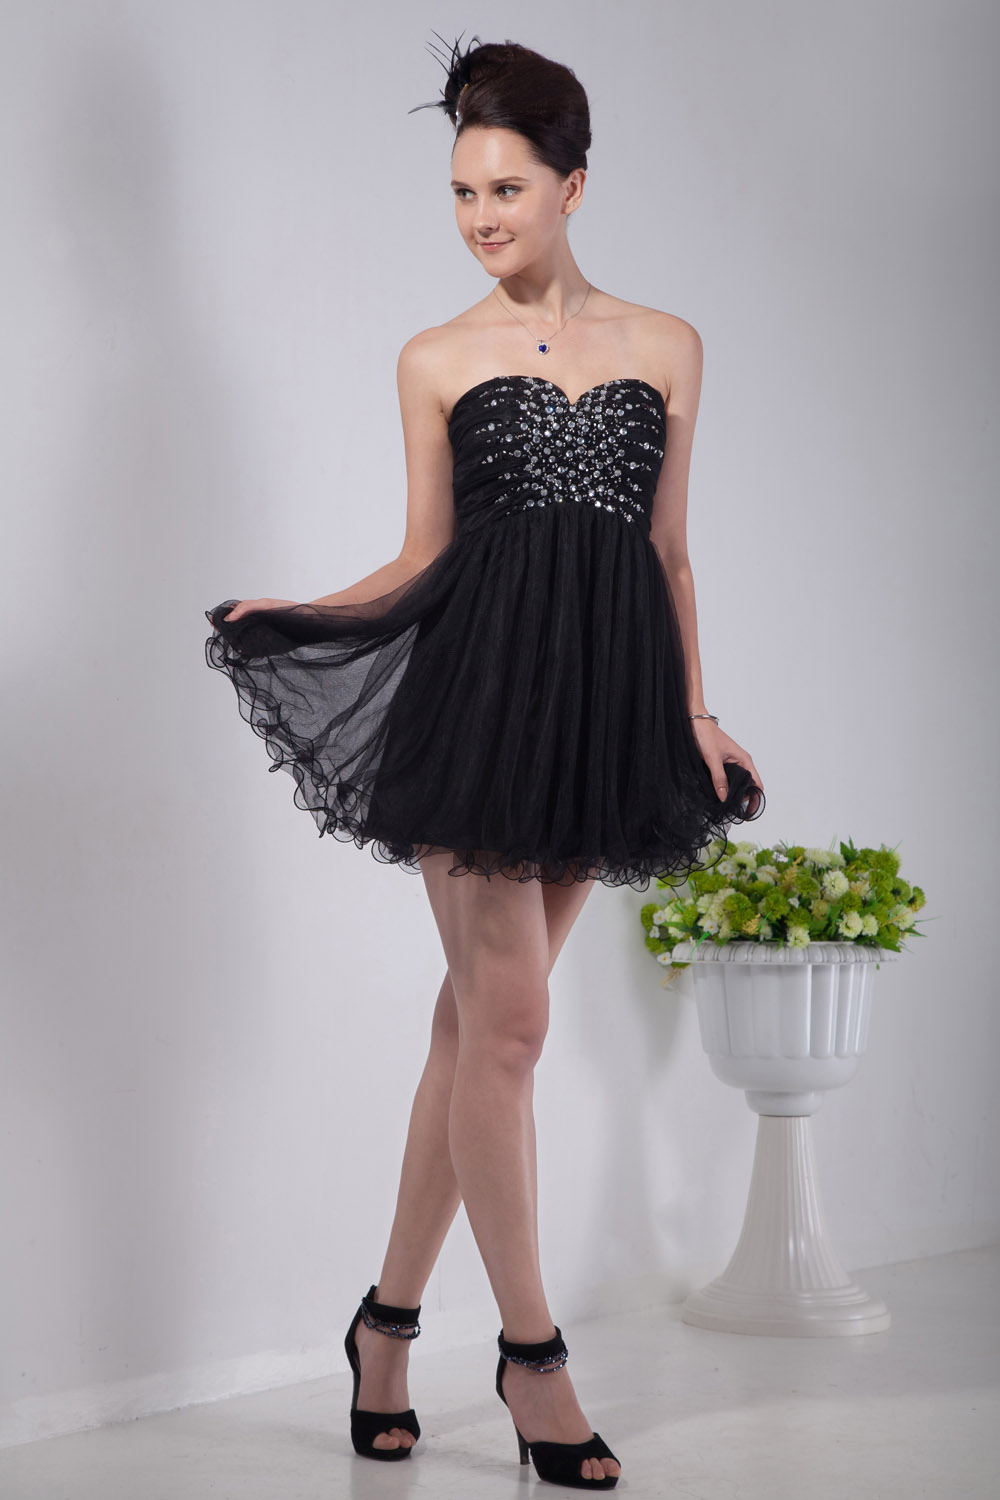 Sheath/Column Sweetheart Short/Mini Chiffon Homecoming Dress